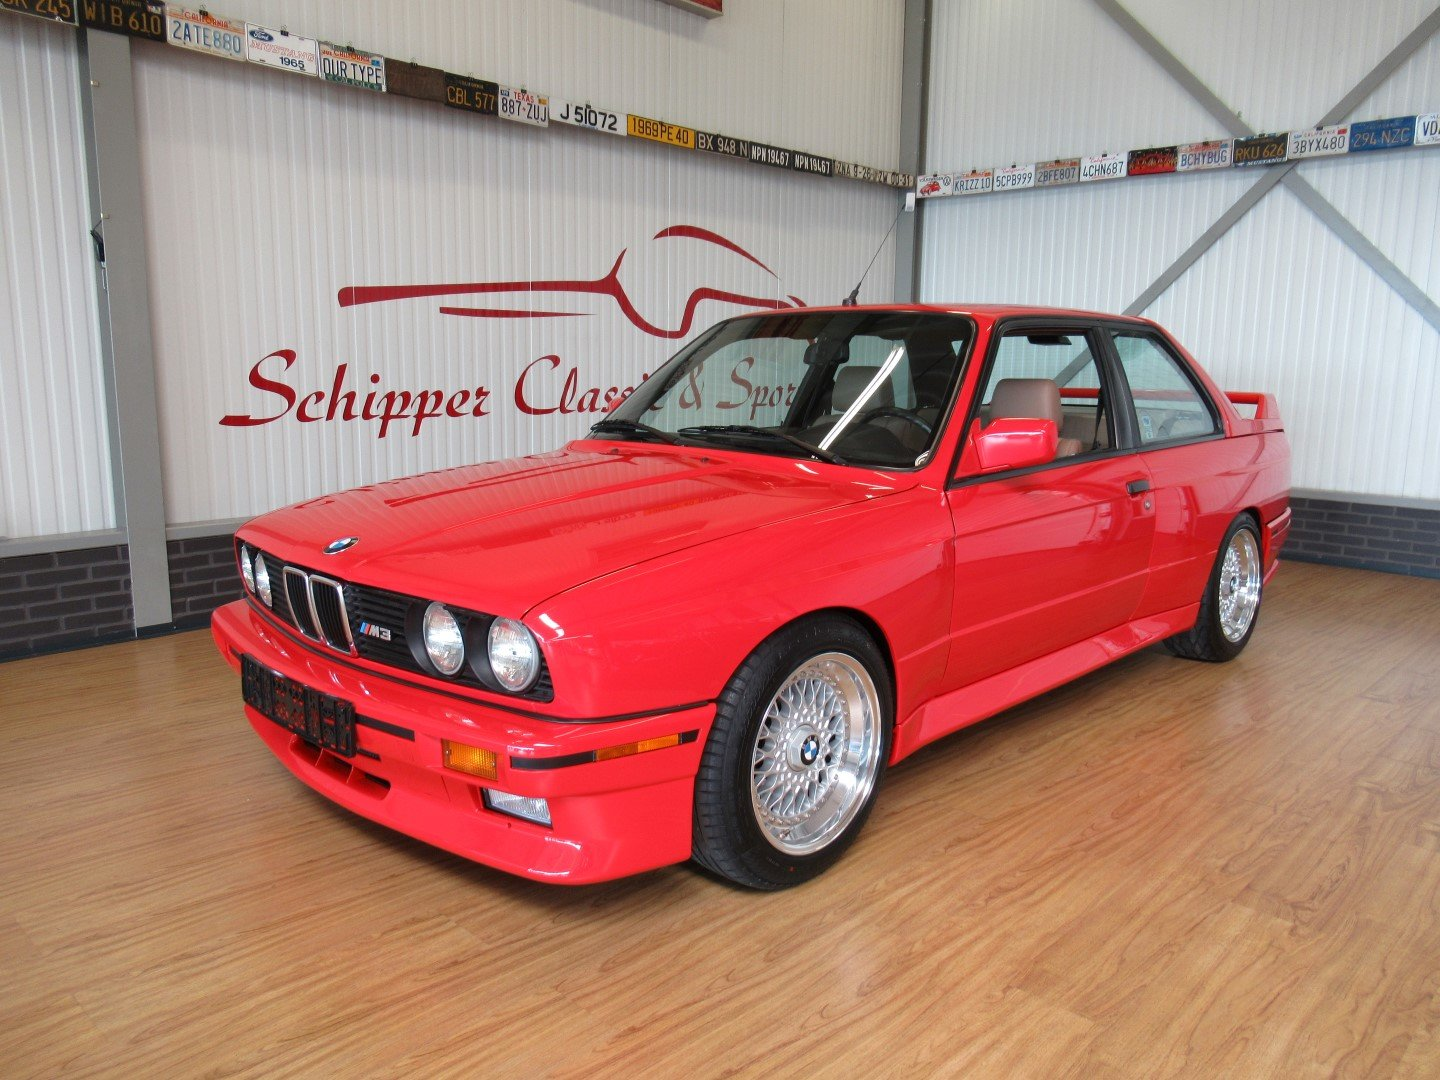 1990 BMW BMW E30 M3 Brillantrot For Sale (picture 1 of 6)